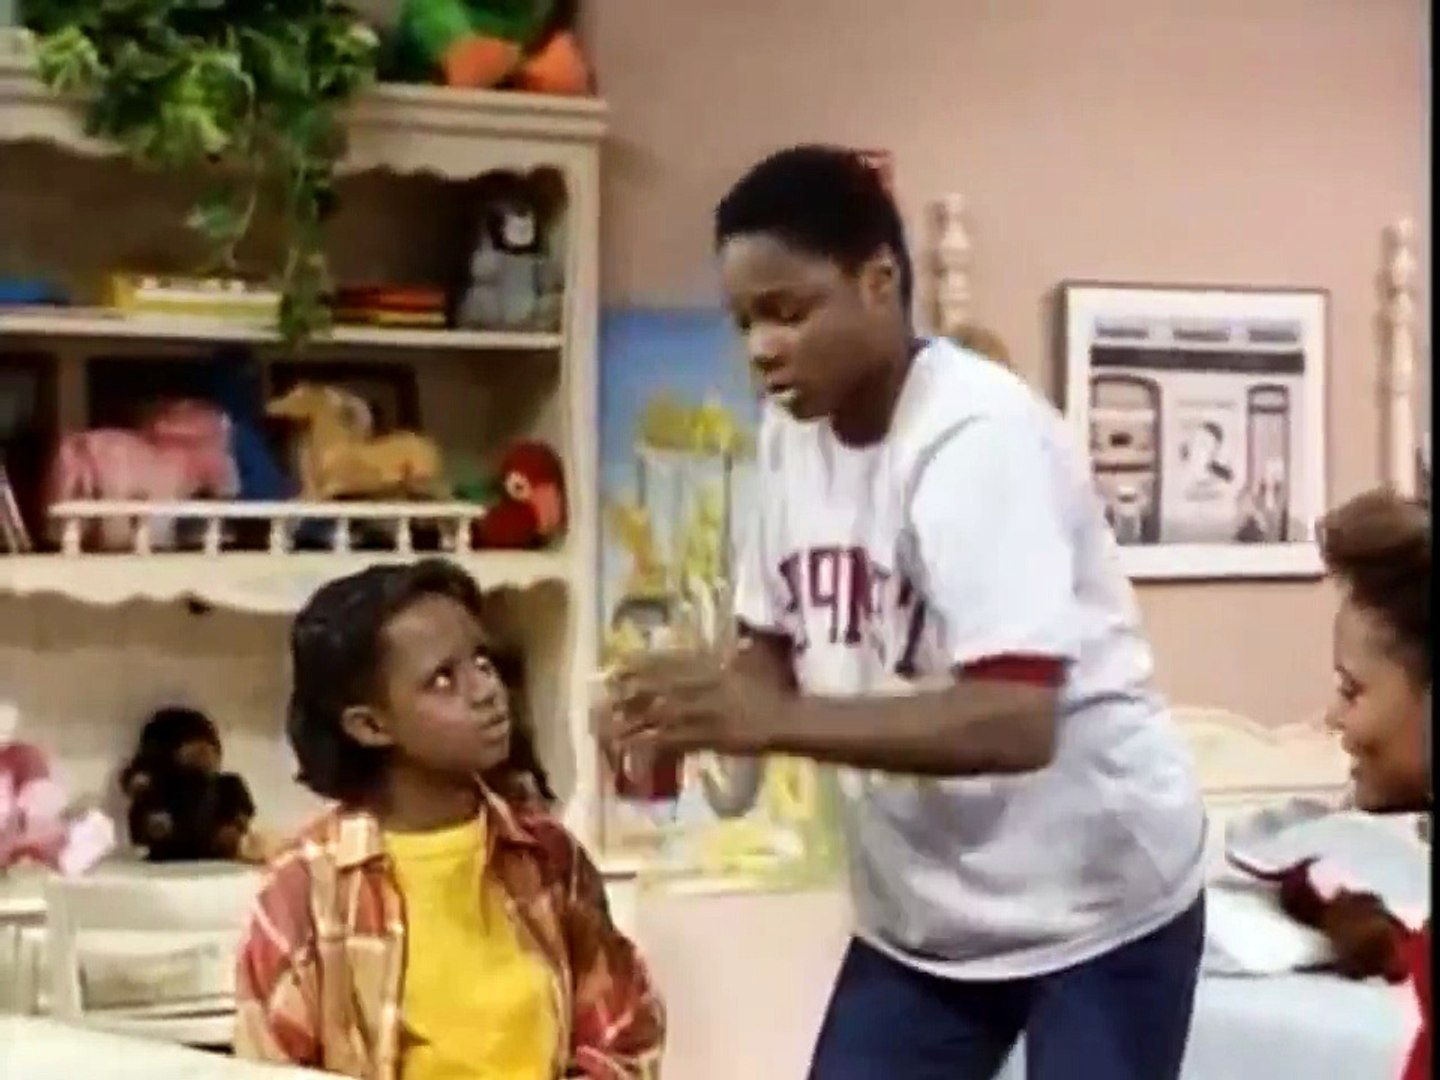 The Cosby Show S02E05 - Theo and the Older Woman